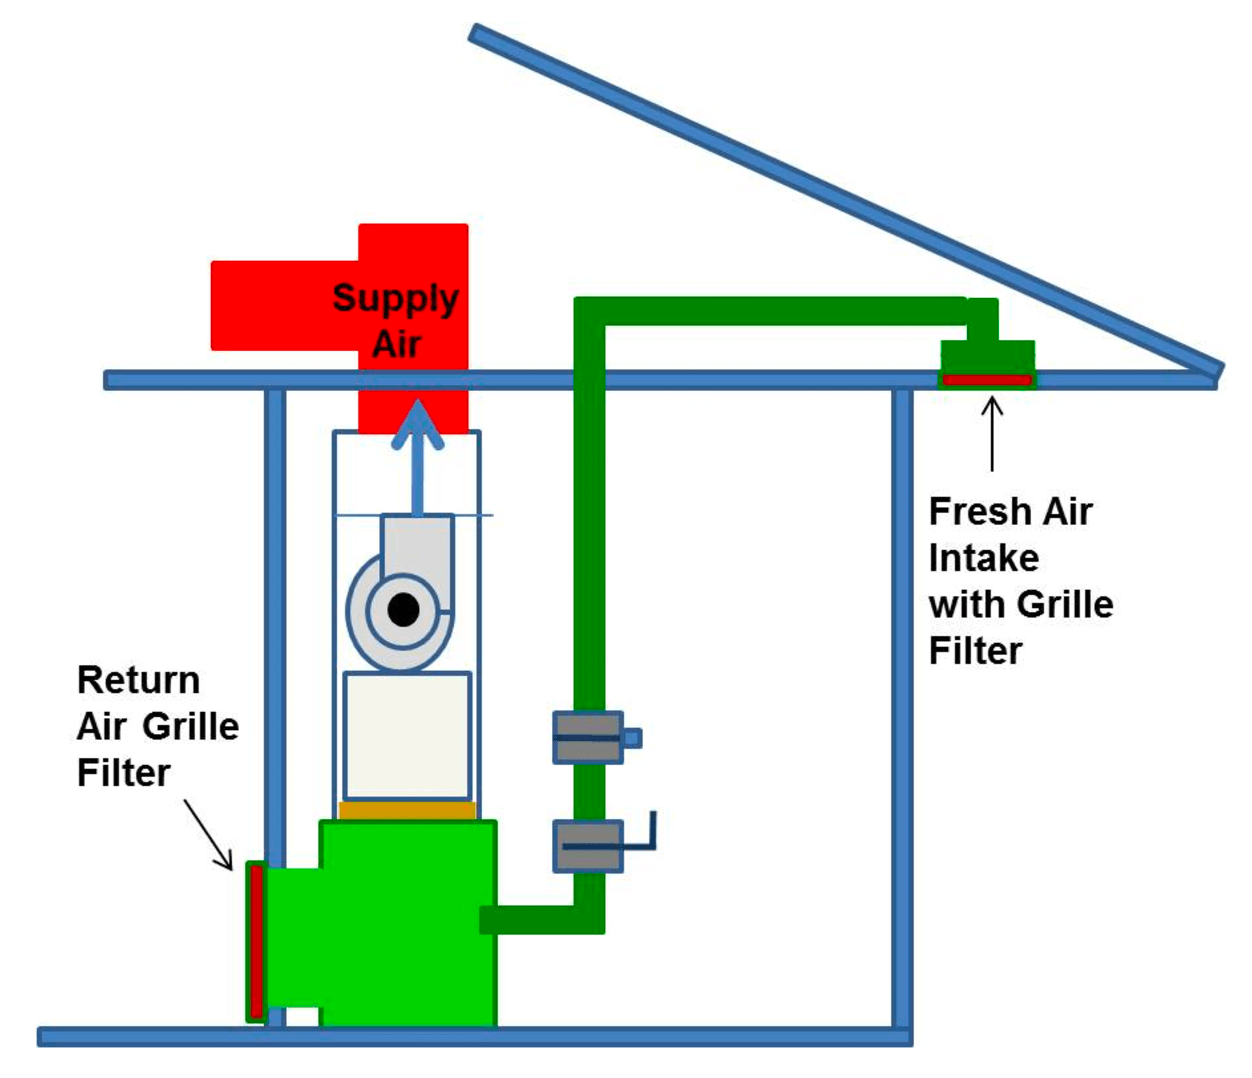 hight resolution of additionally the fresh air intake should be located where it is accessible so the filter can be cleaned or replaced as needed home inspectors can also